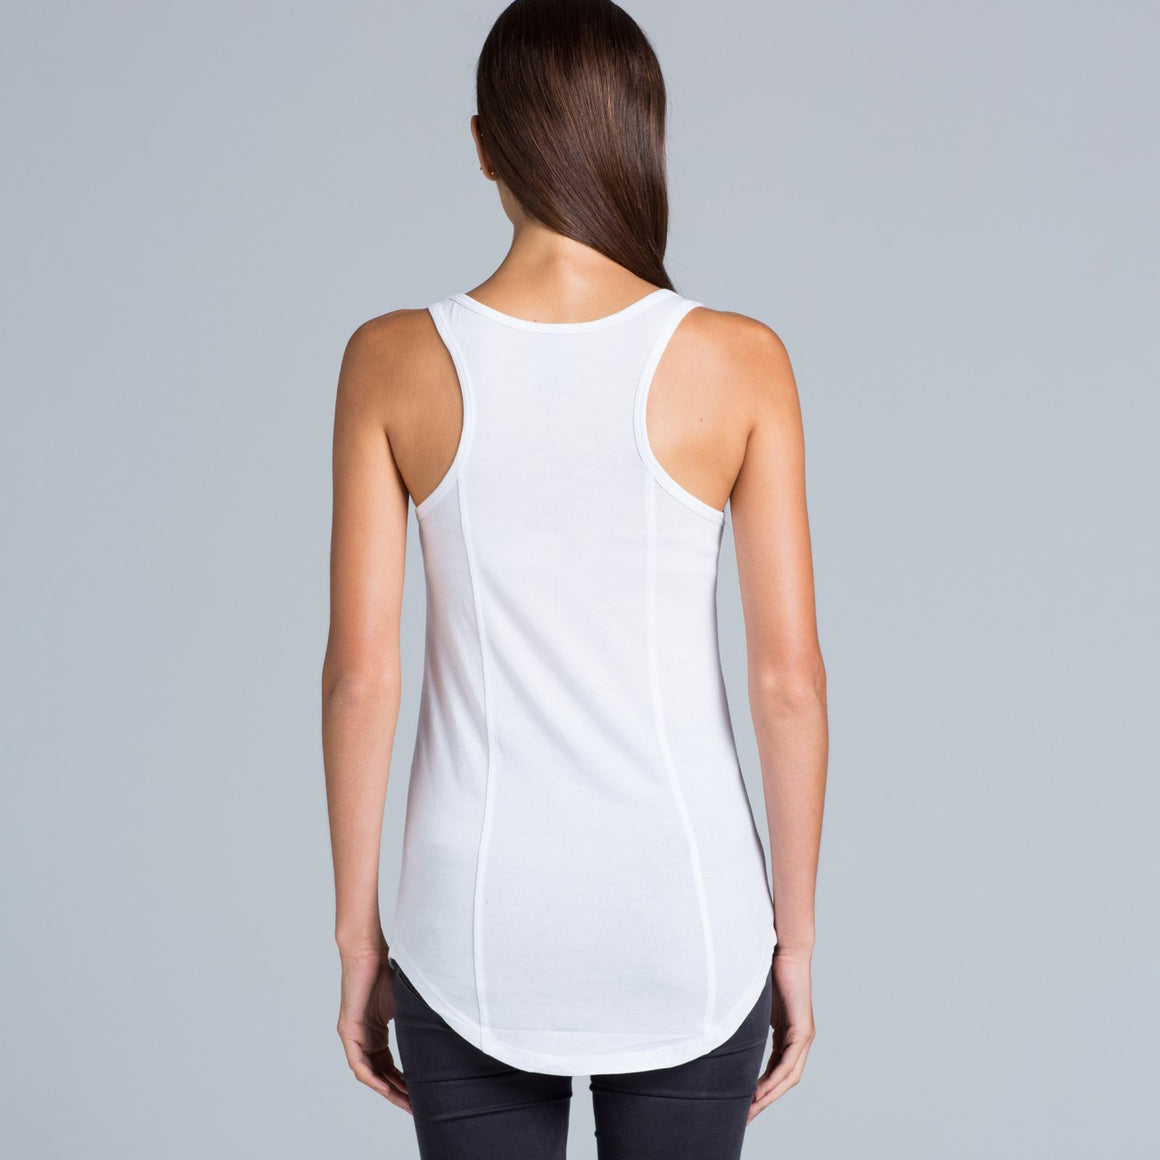 Fifty5 Luxe Women's Dash Panel Detail Racerback Tank Top